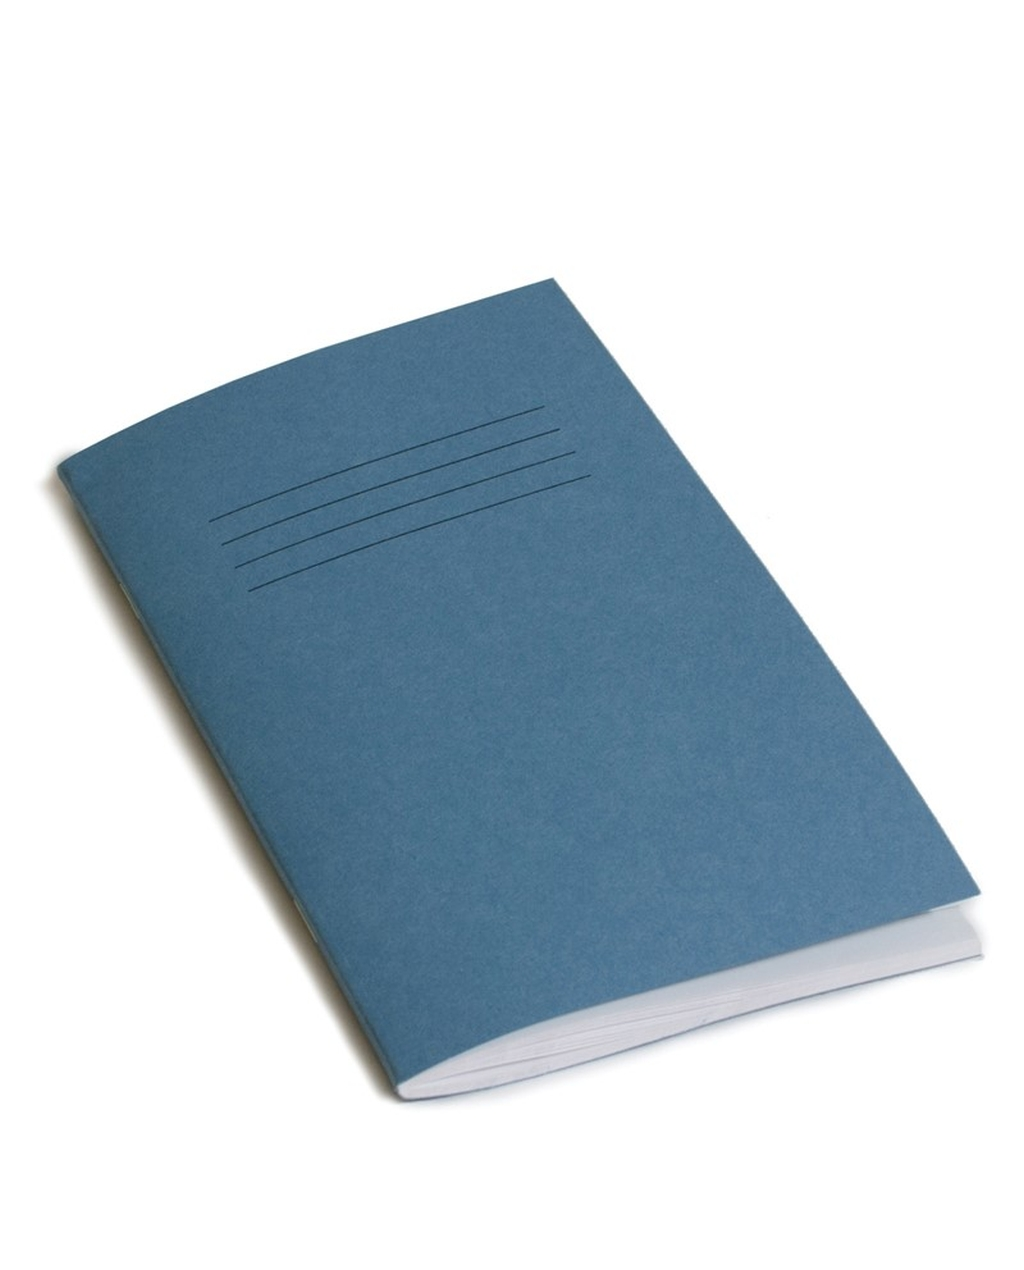 Exercise Book 6.5 x 4 (165 x 102mm) Blue Cover 7mm Ruled 48 Pages